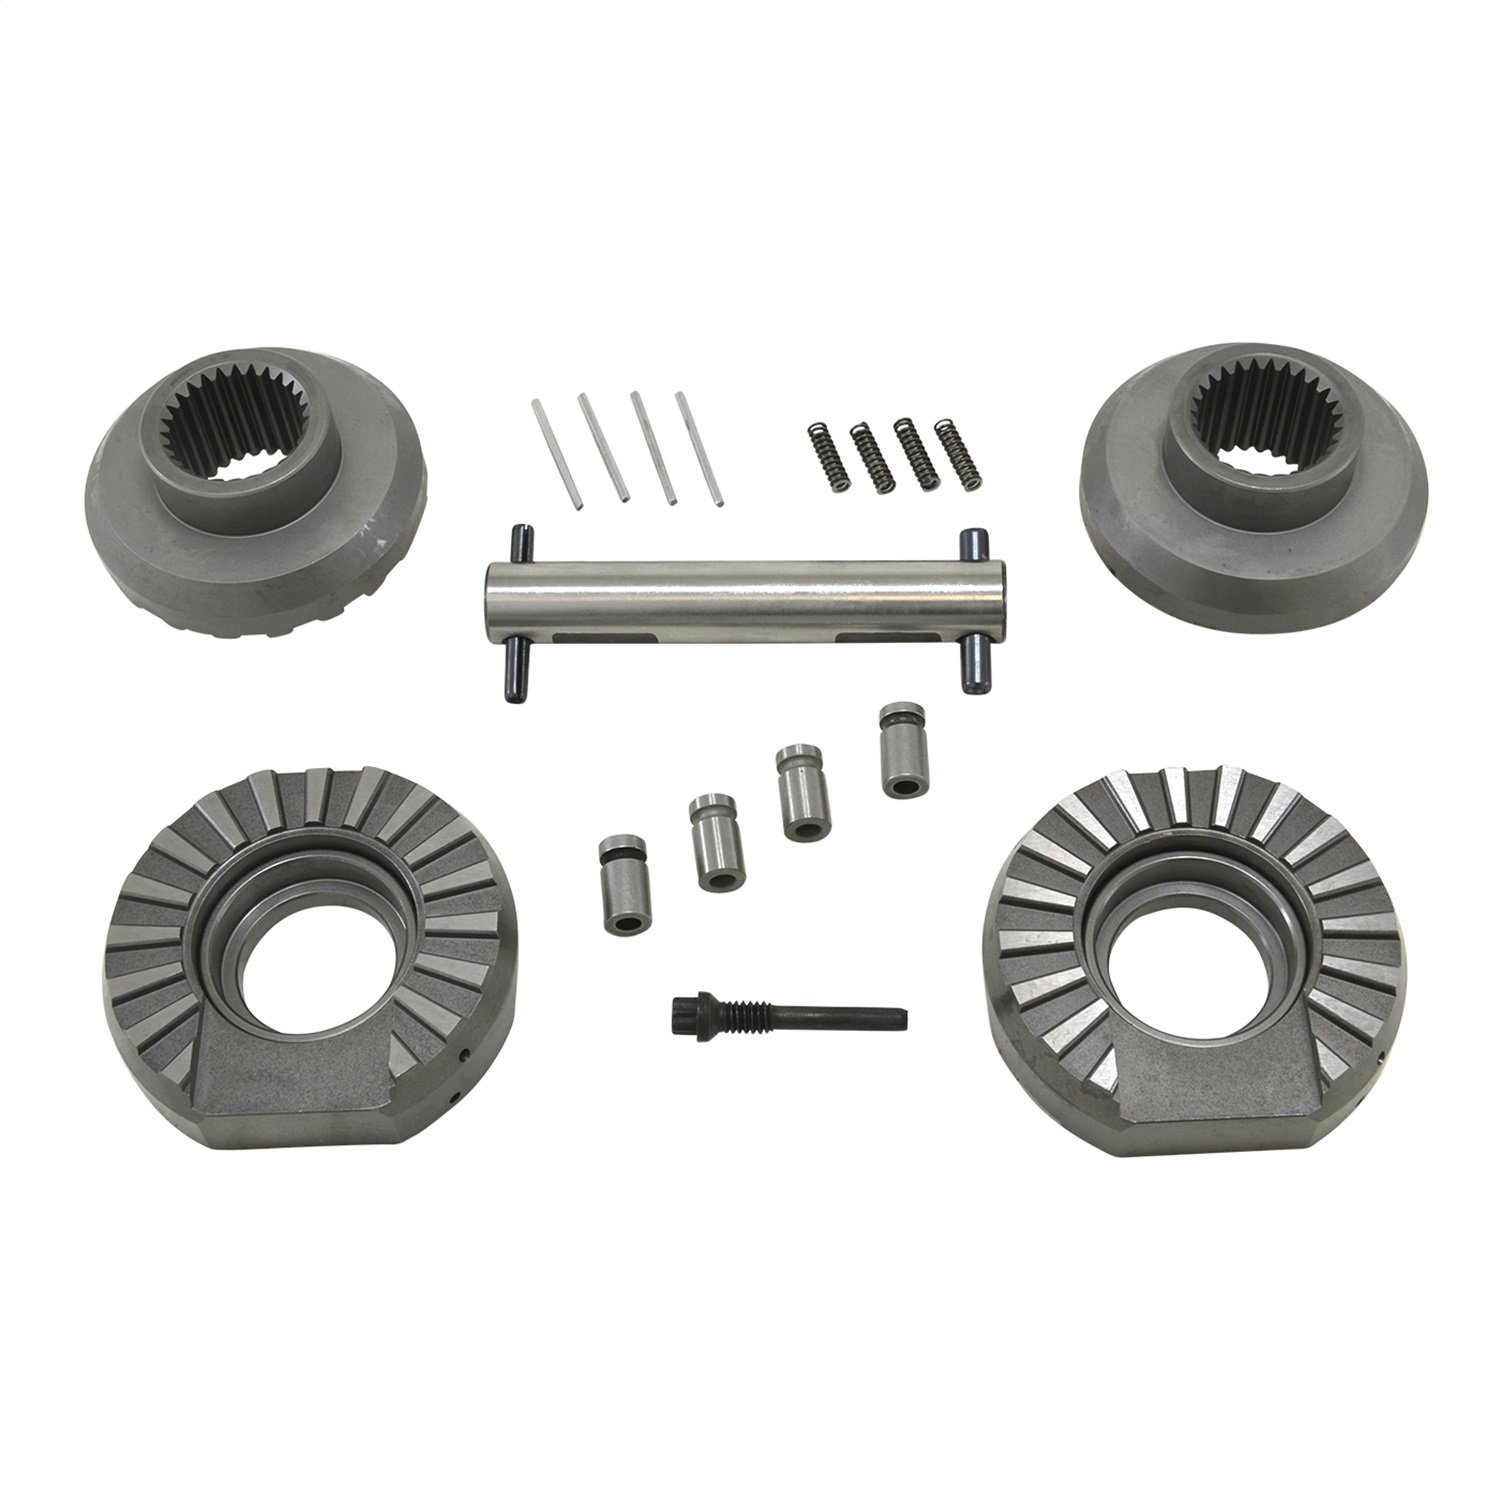 SL F8.8-31 Spartan Locker for ford 8.8 Differential with 31 Spline Axles USA Standard Gear